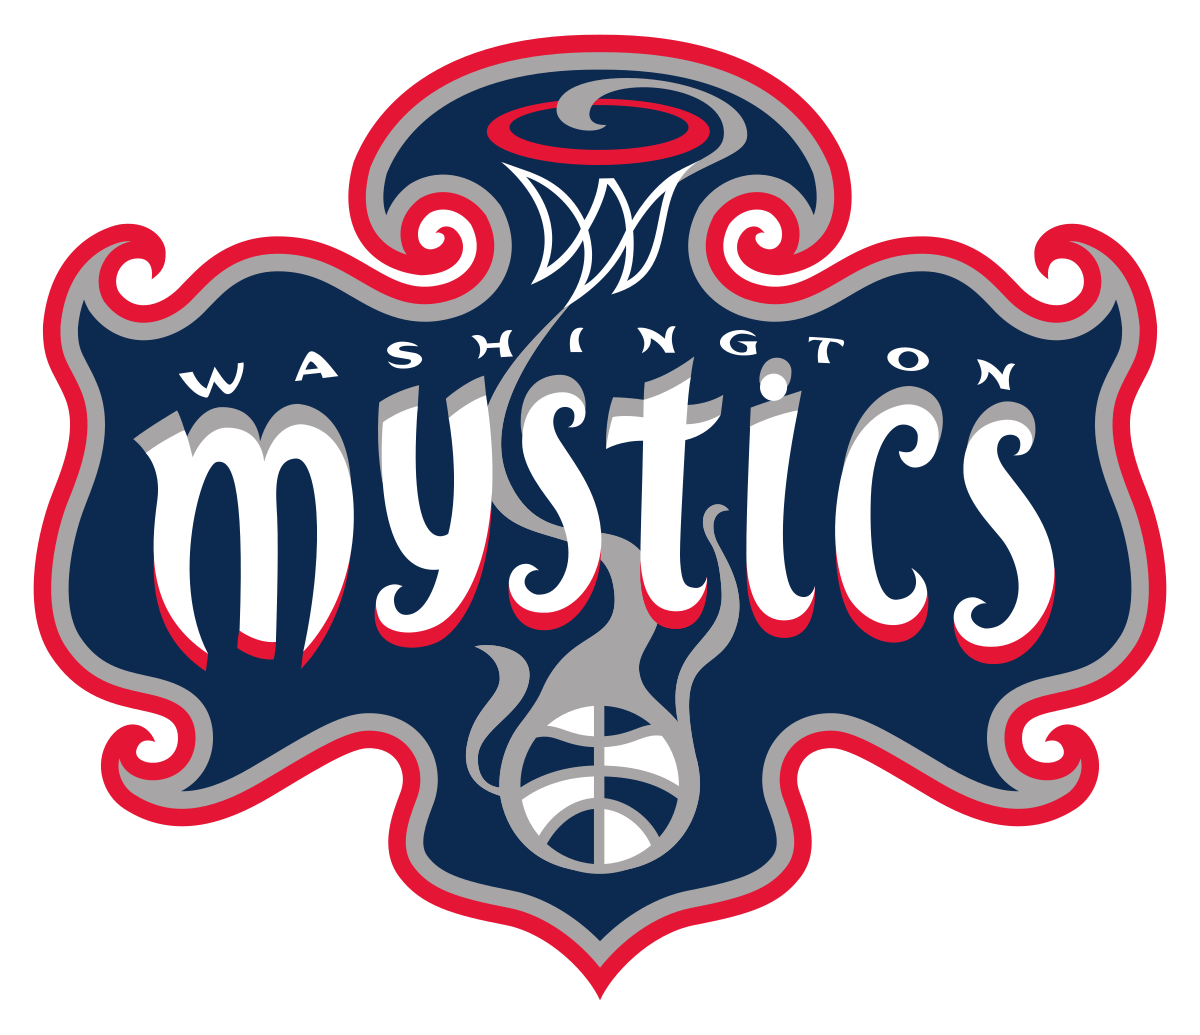 Programme TV Washington Mystics